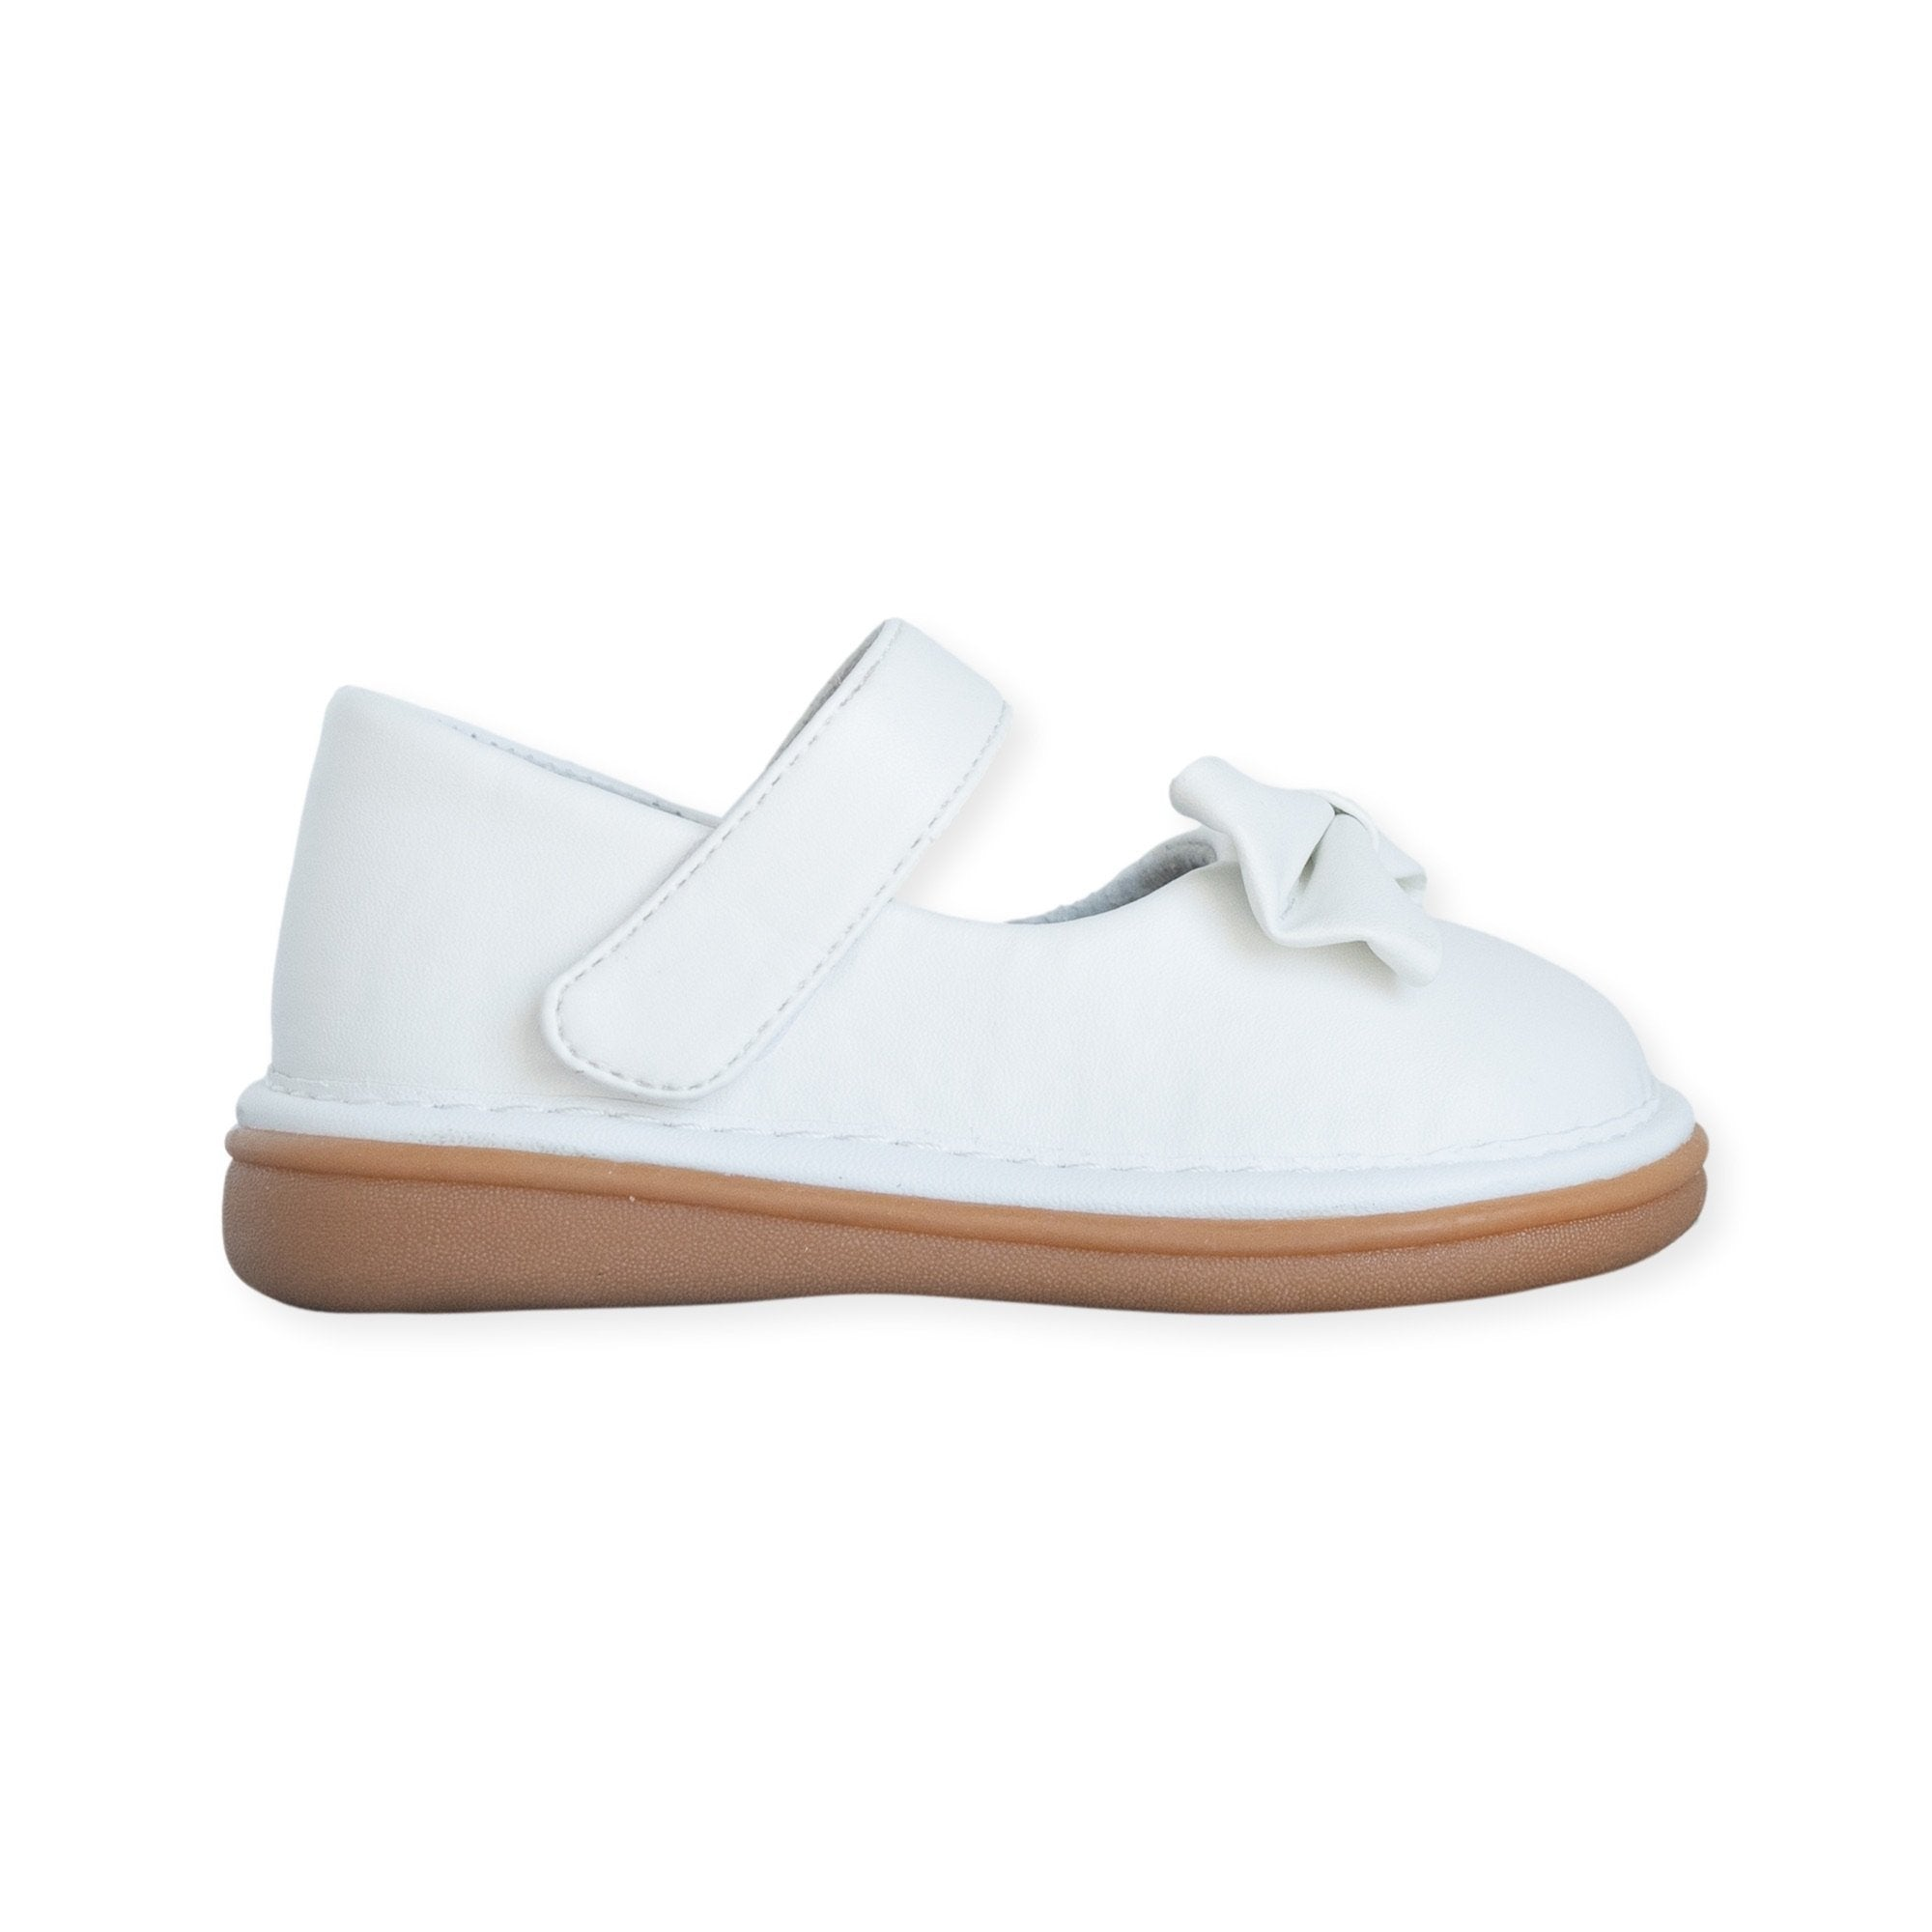 Bow Shoe White - Wee Squeak